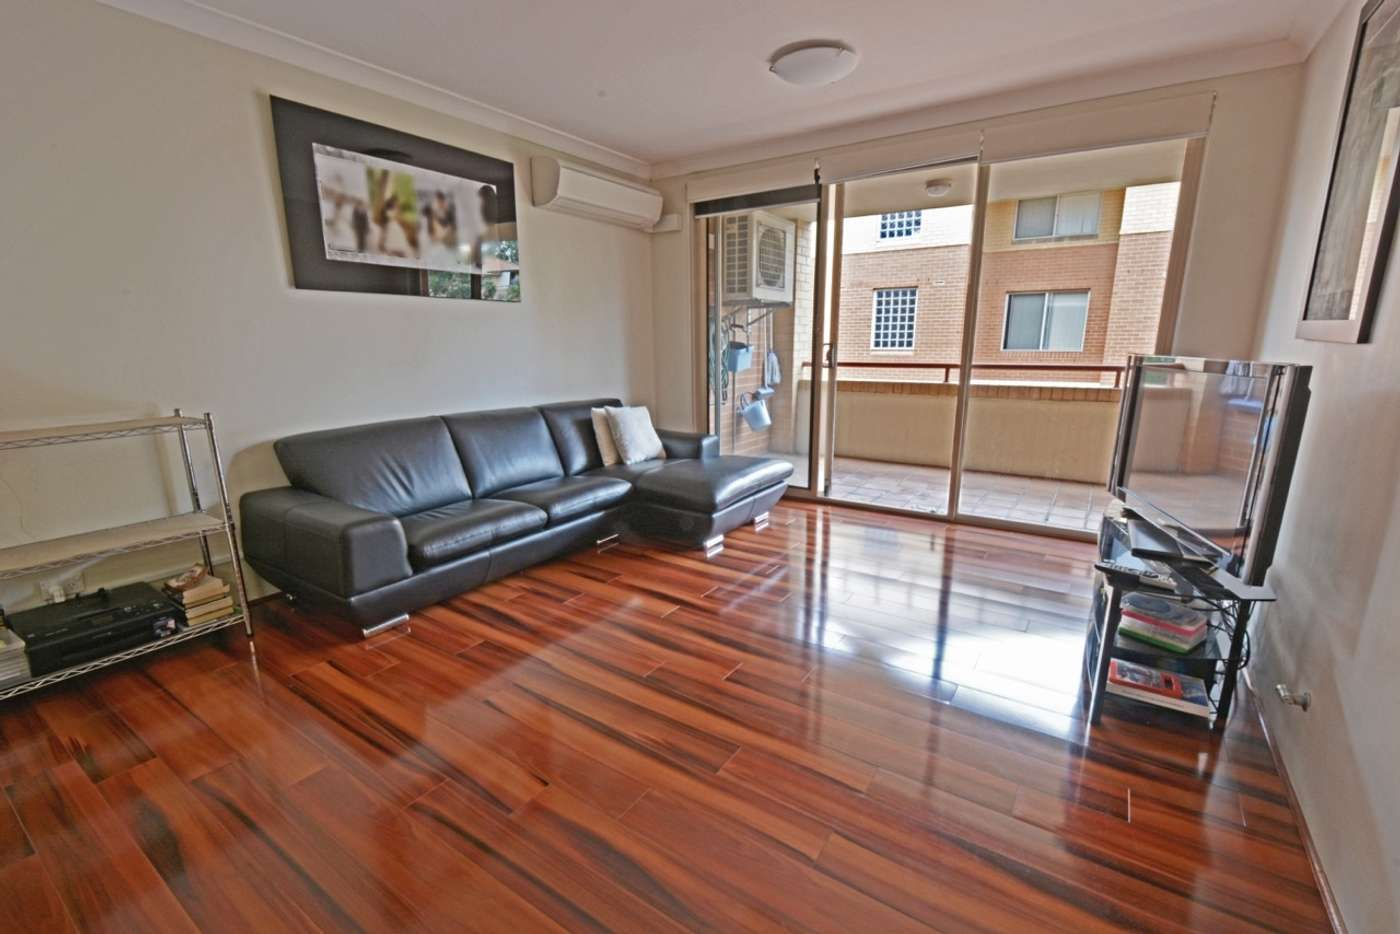 Main view of Homely apartment listing, 9F/19-21 George Street, North Strathfield NSW 2137